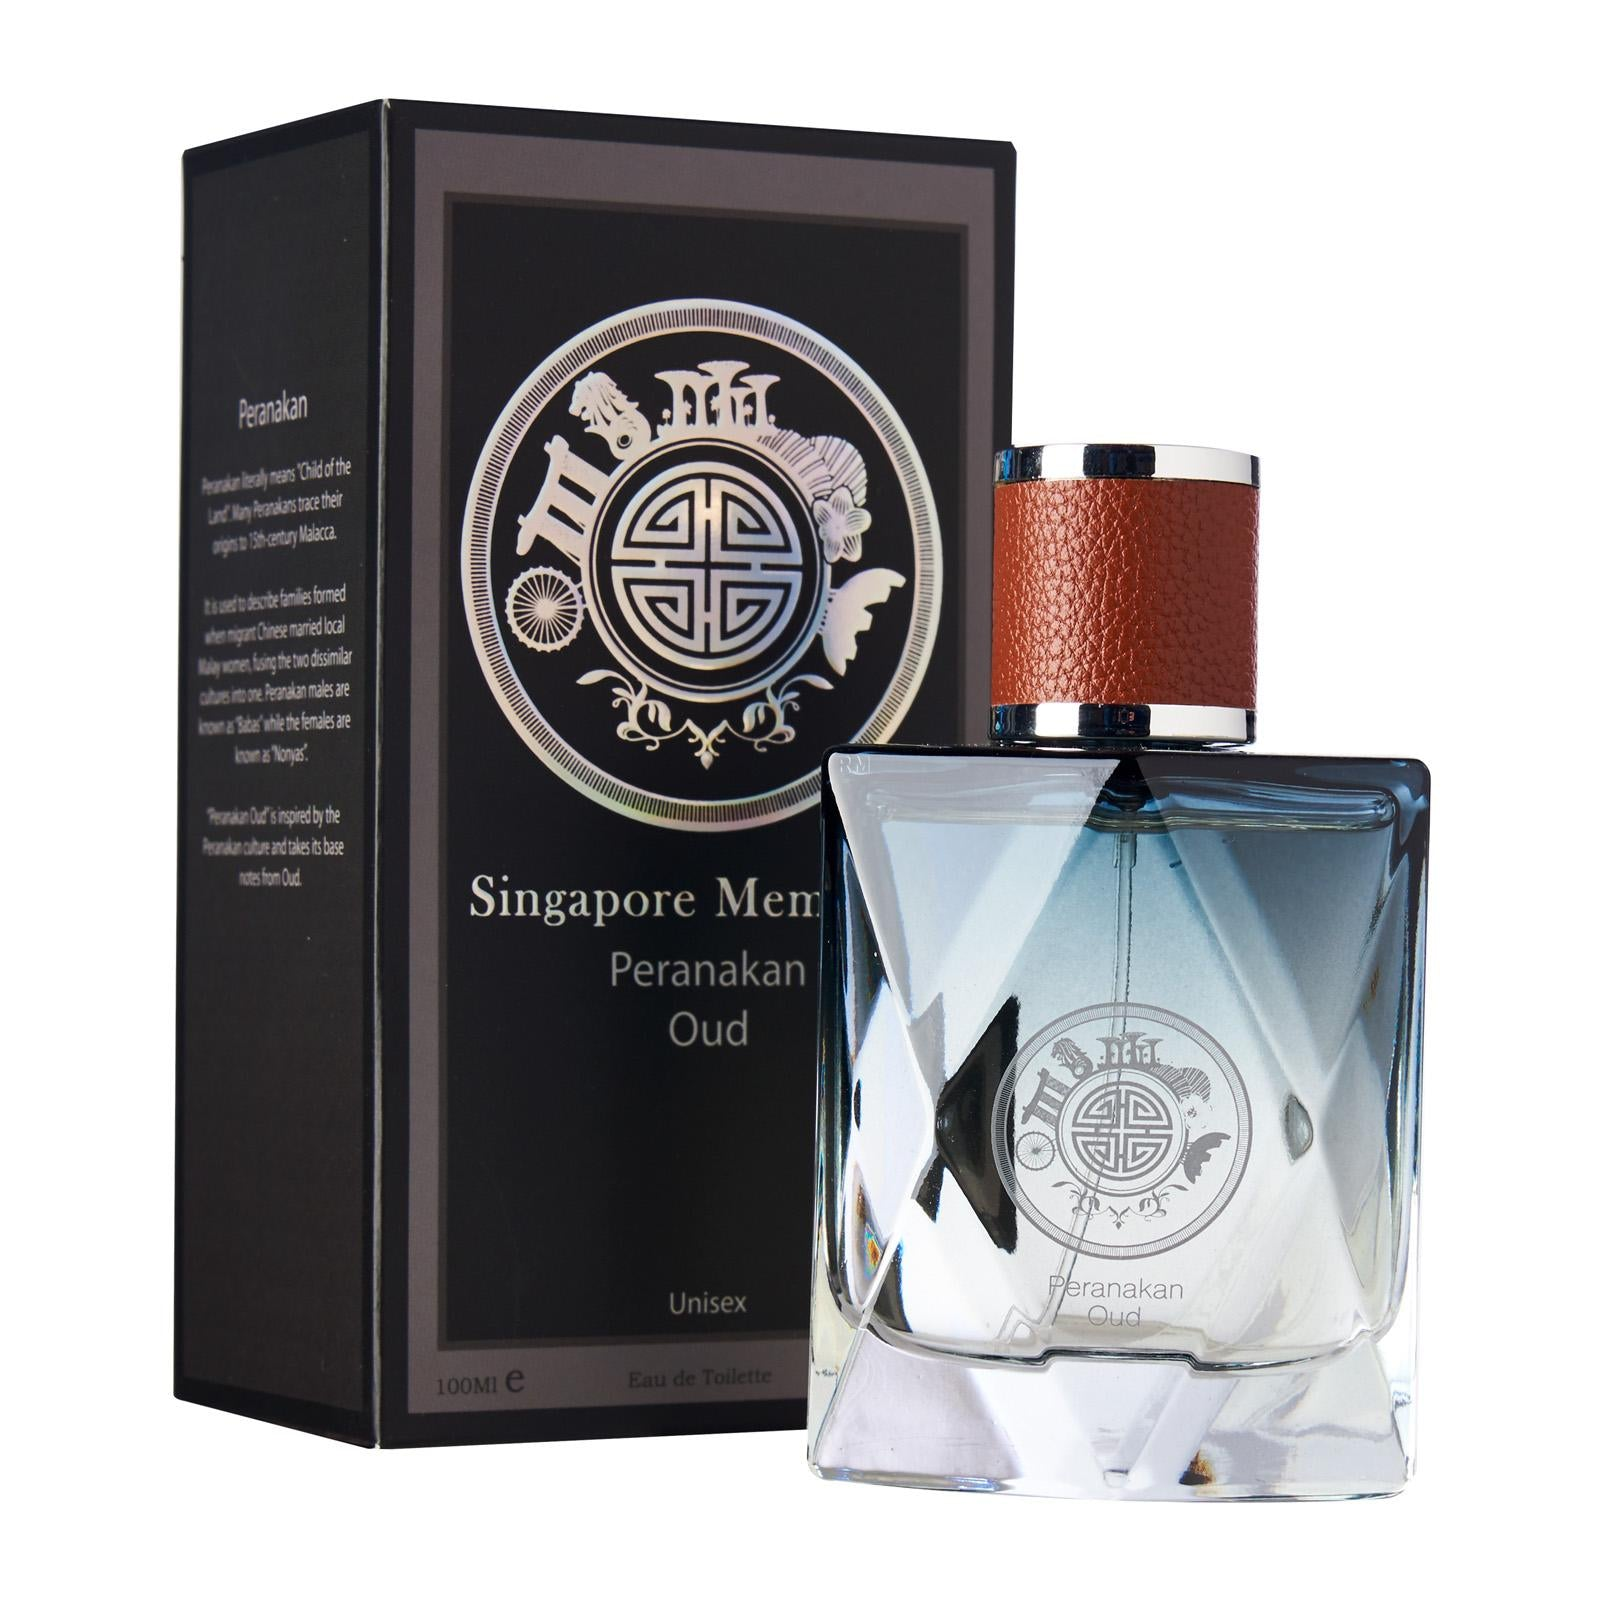 Best gift Singapore Online Perfume Collections : Singapore Memories & Peranakan Oud : Scented gift for overseas friends and corporate gift